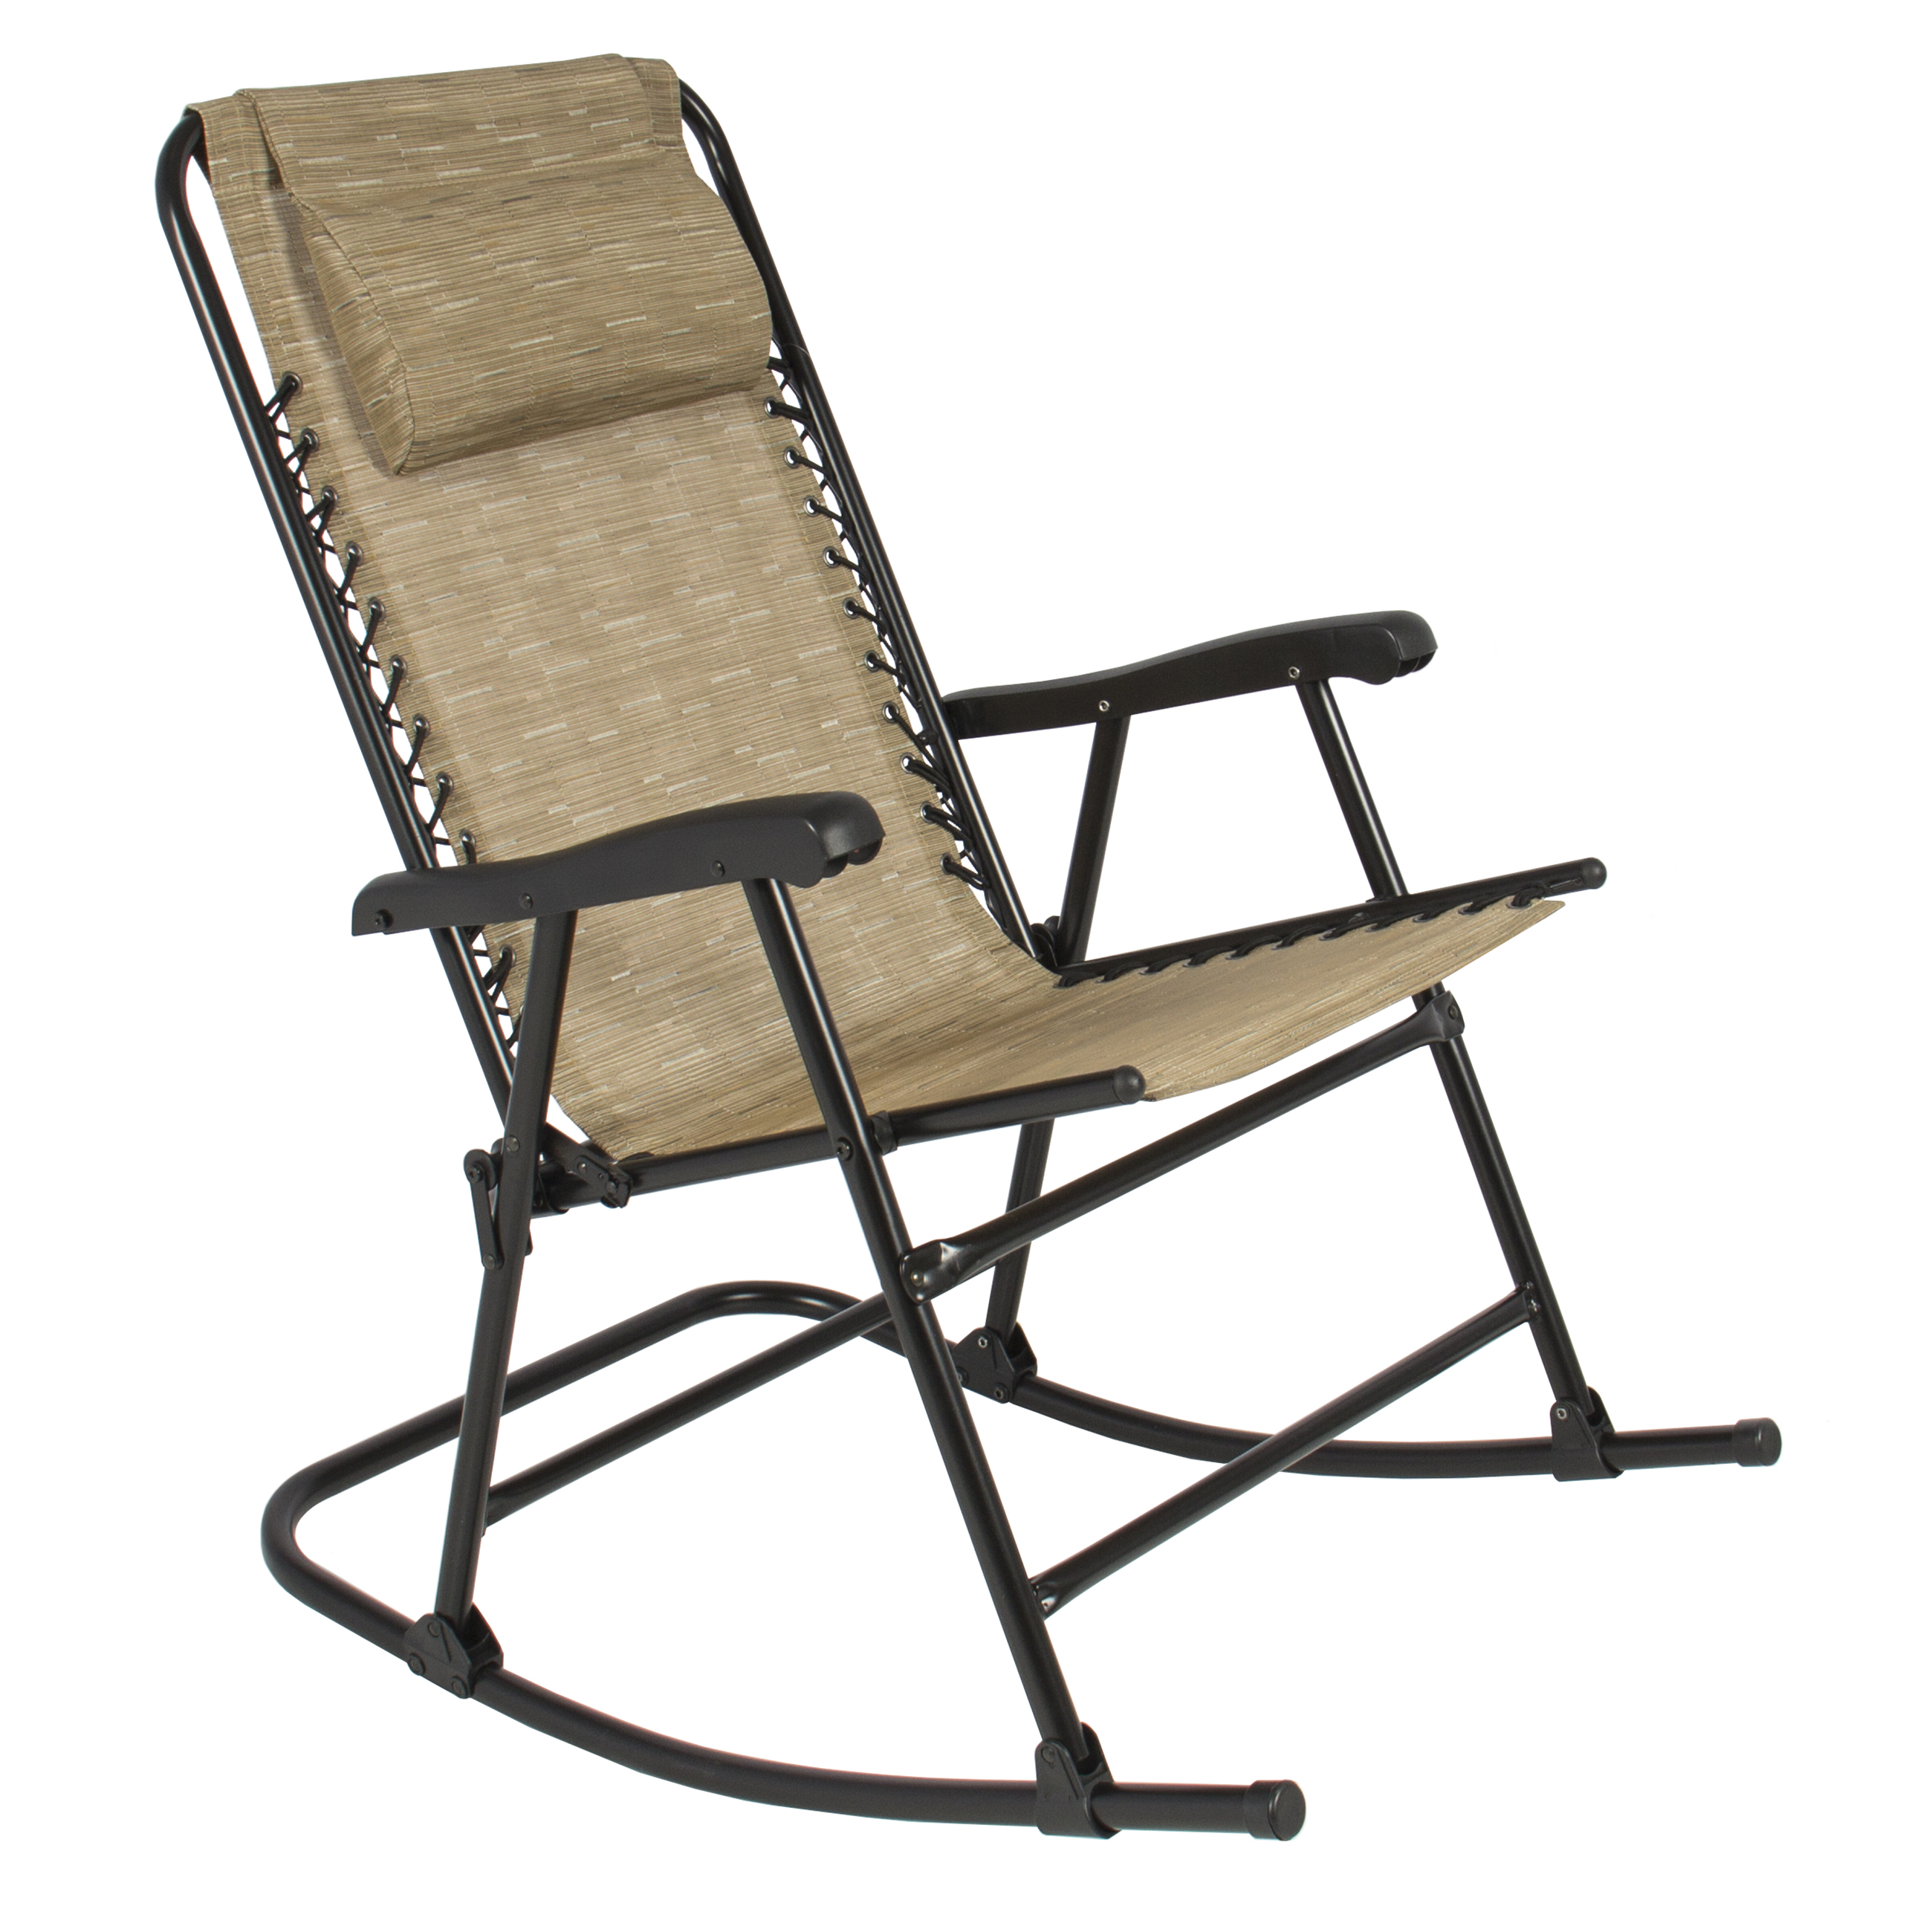 Trees And Trends Patio Furniture. Best Choice Products Folding Rocking Chair  Foldable Rocker Outdoor Patio Part 52